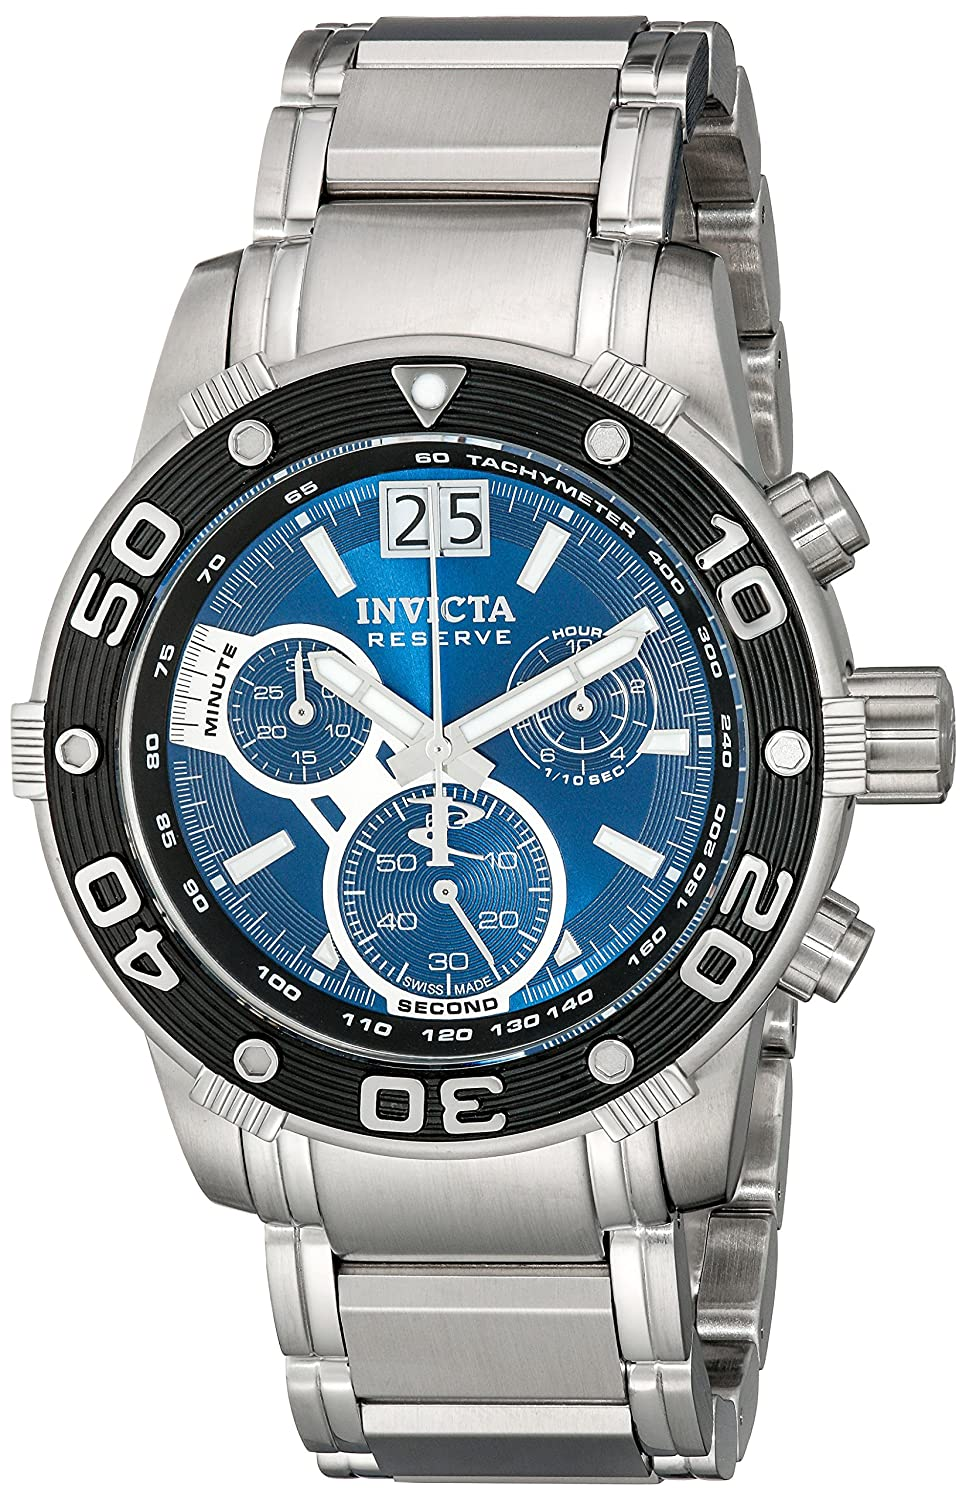 Invicta Men s 10588 Ocean Reef Reserve Chronograph Blue Dial Stainless Steel Watch